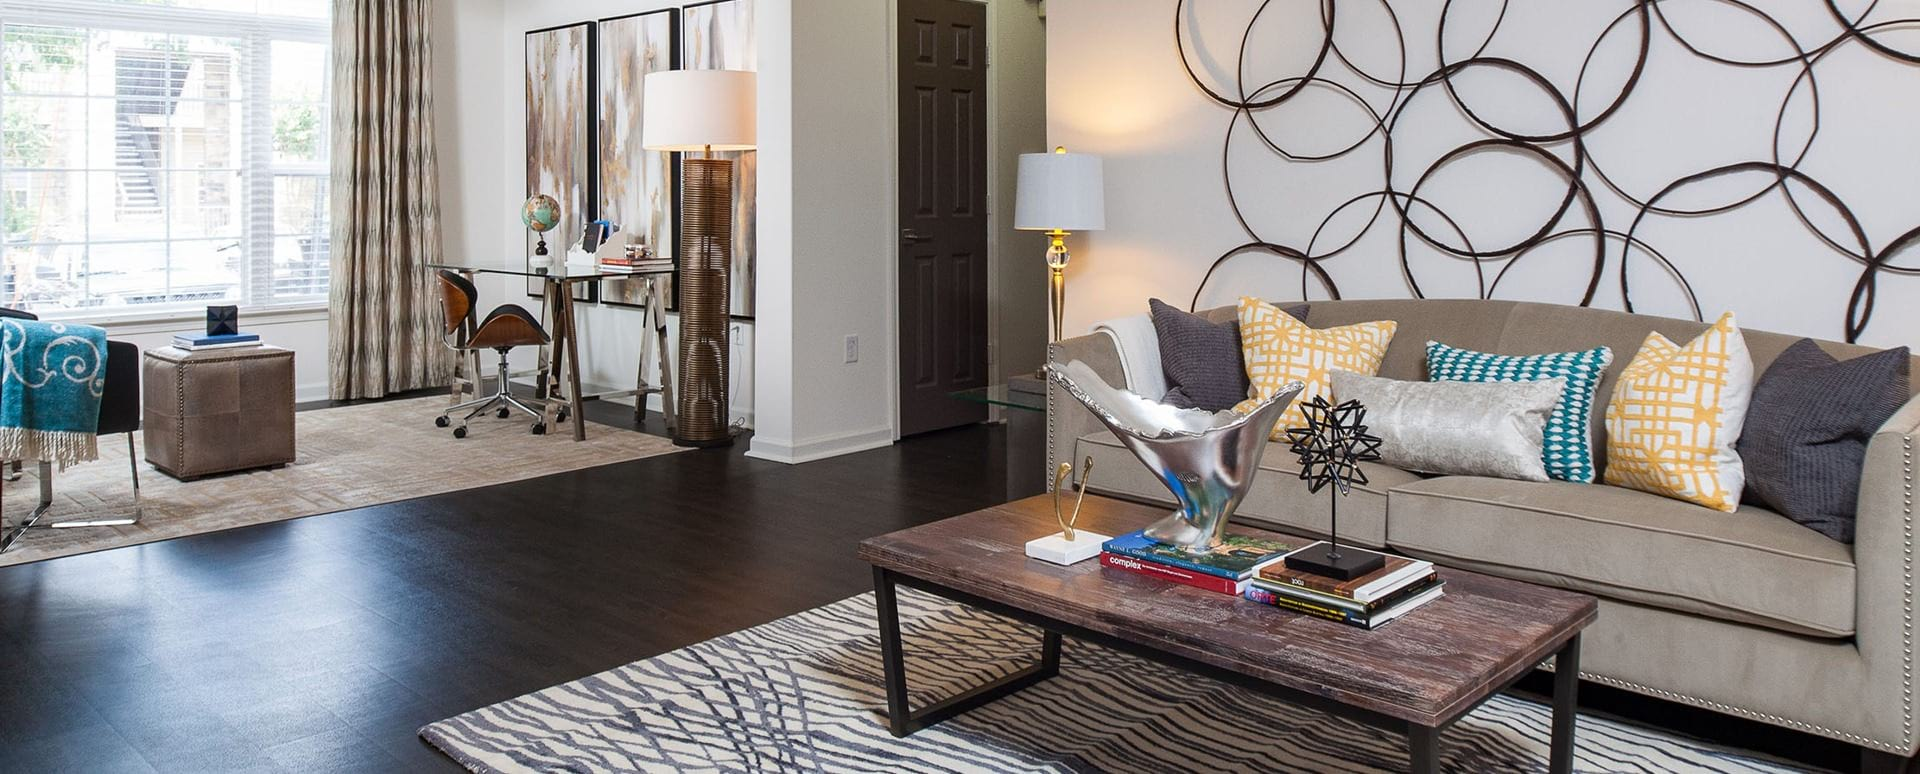 Open floor plan at apartments in Duluth, GA